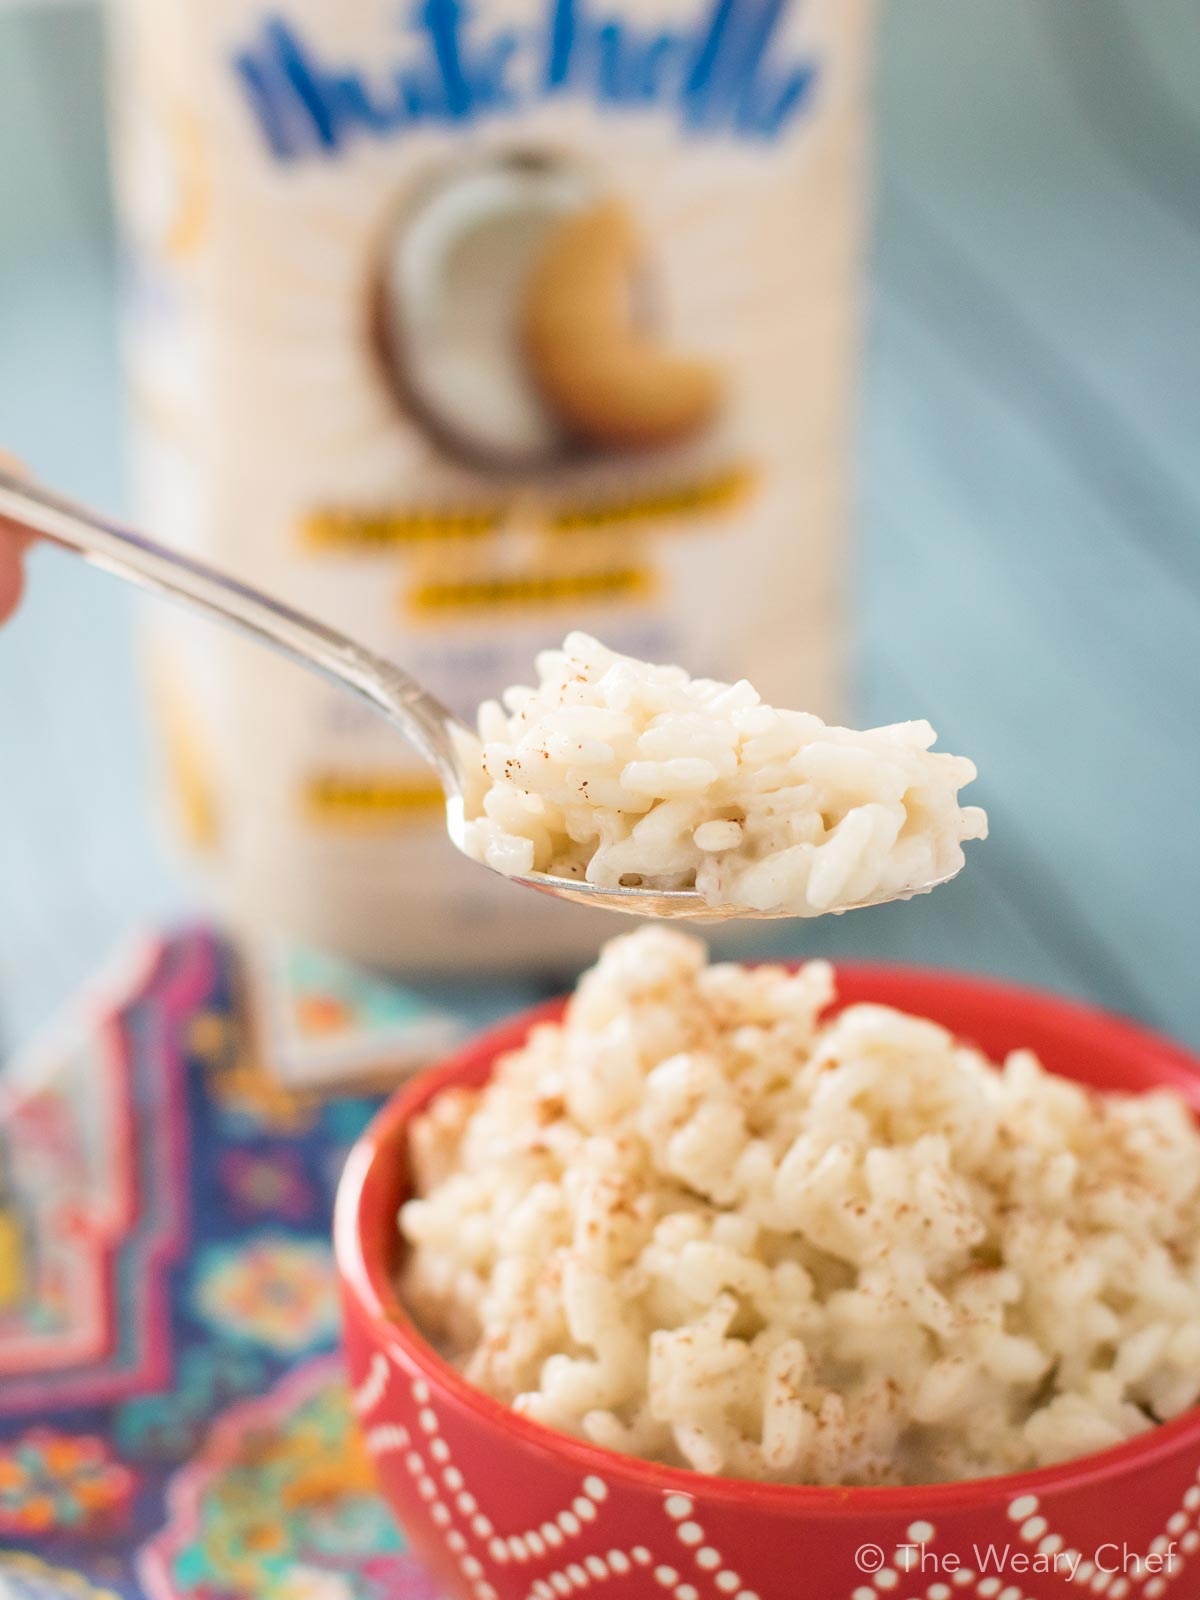 Low in sugar, dairy free, and delicious. You've gotta try this easy vegan rice pudding!